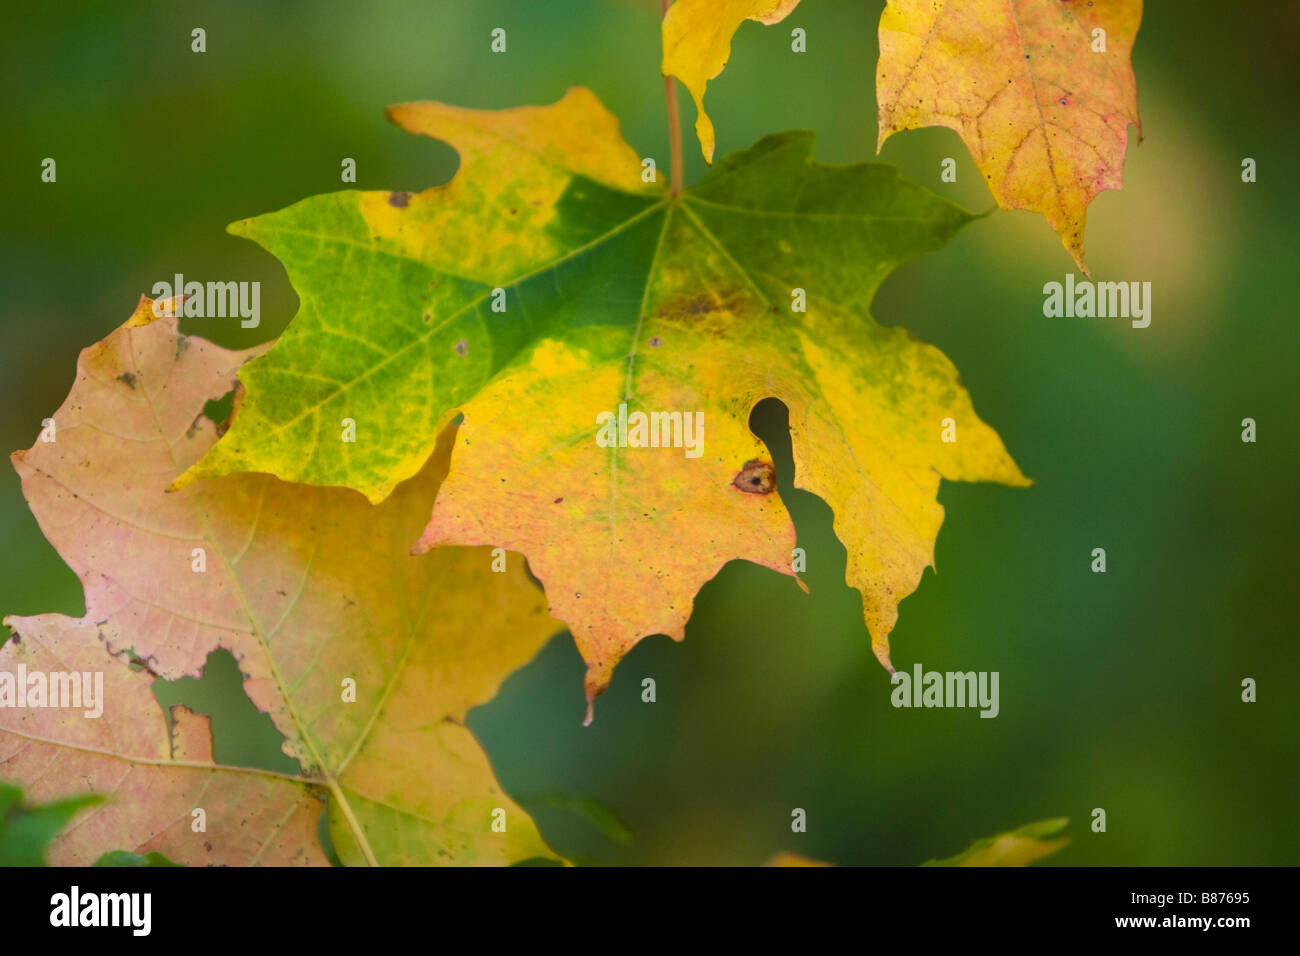 Leaf Changing Colors Stock Photos & Leaf Changing Colors Stock ...